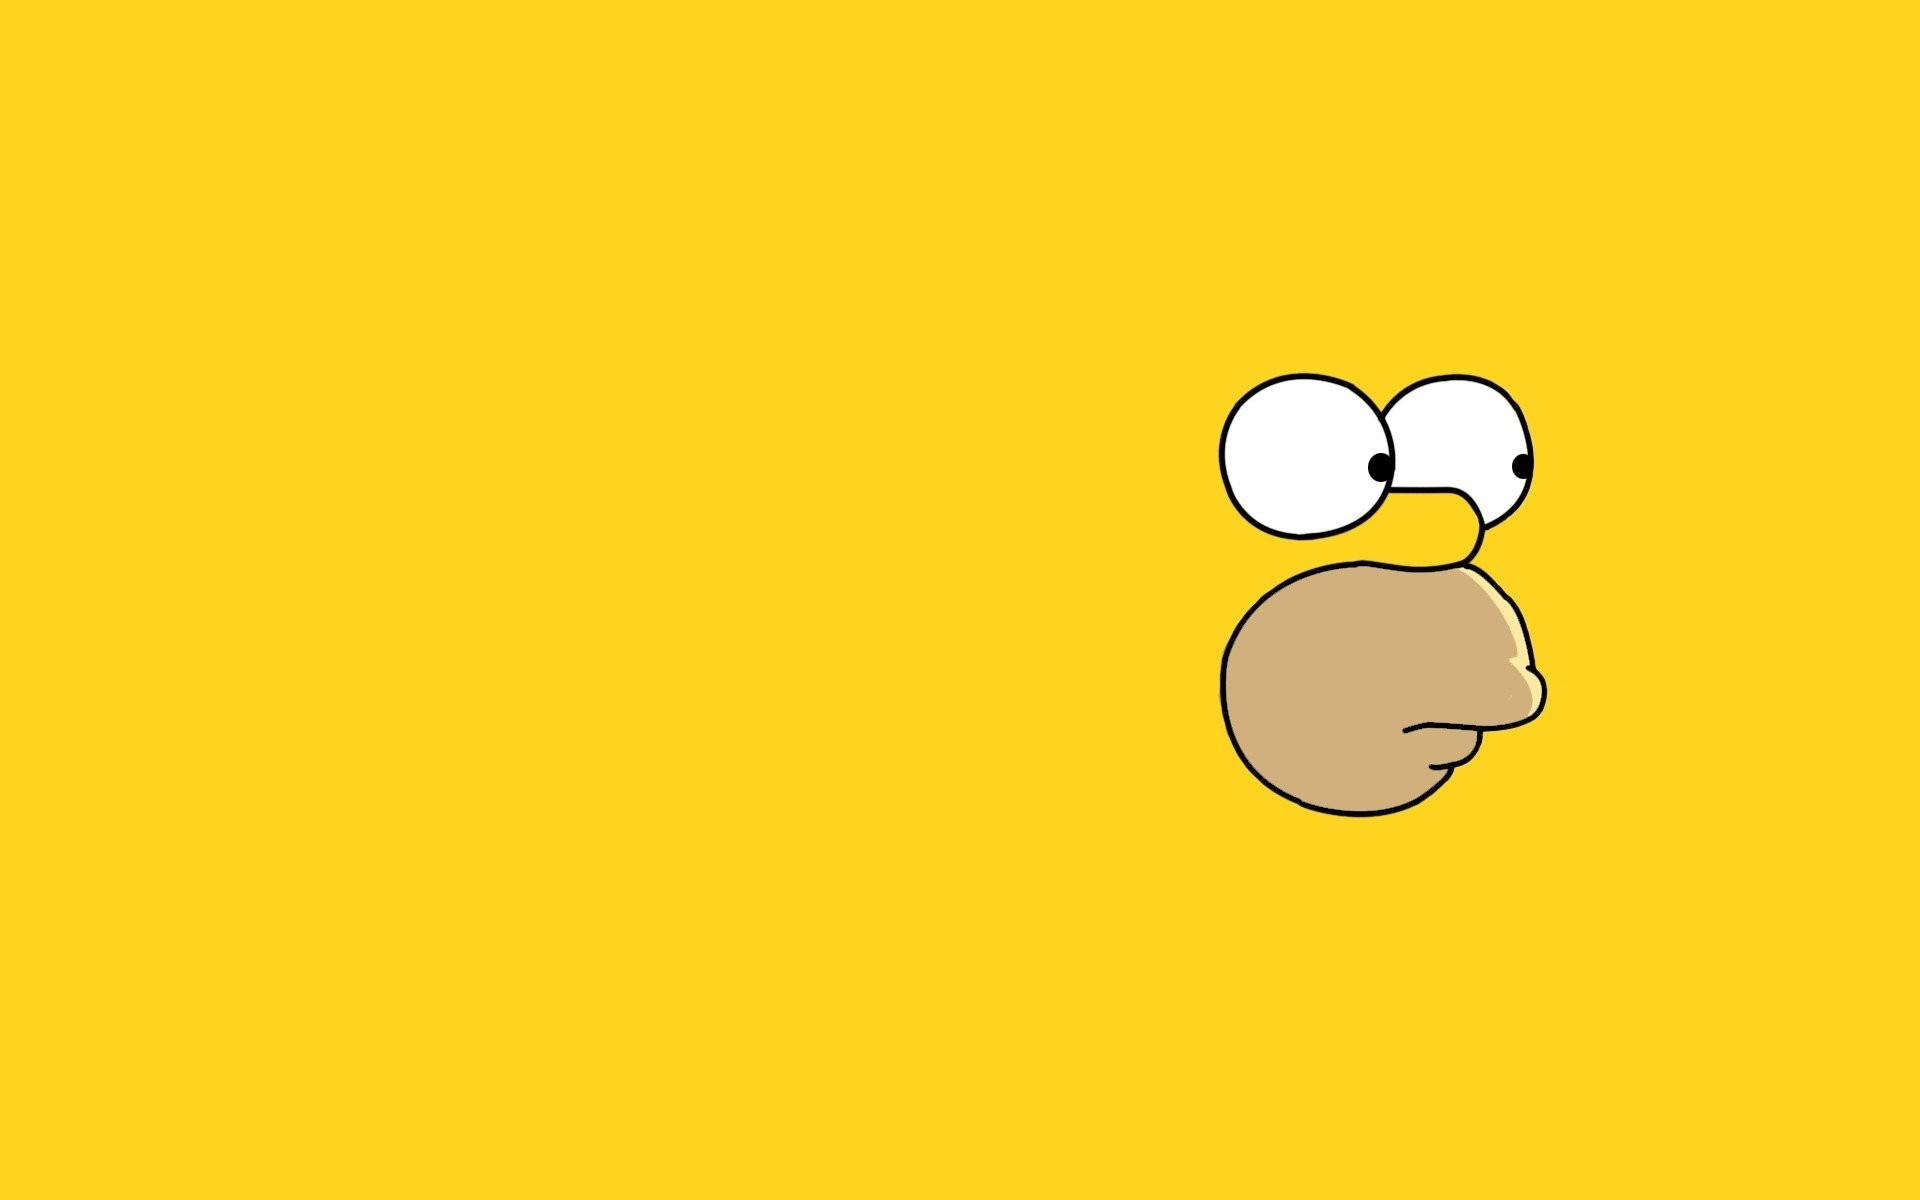 The Simpsons Wallpaper For Desktop 68 Images